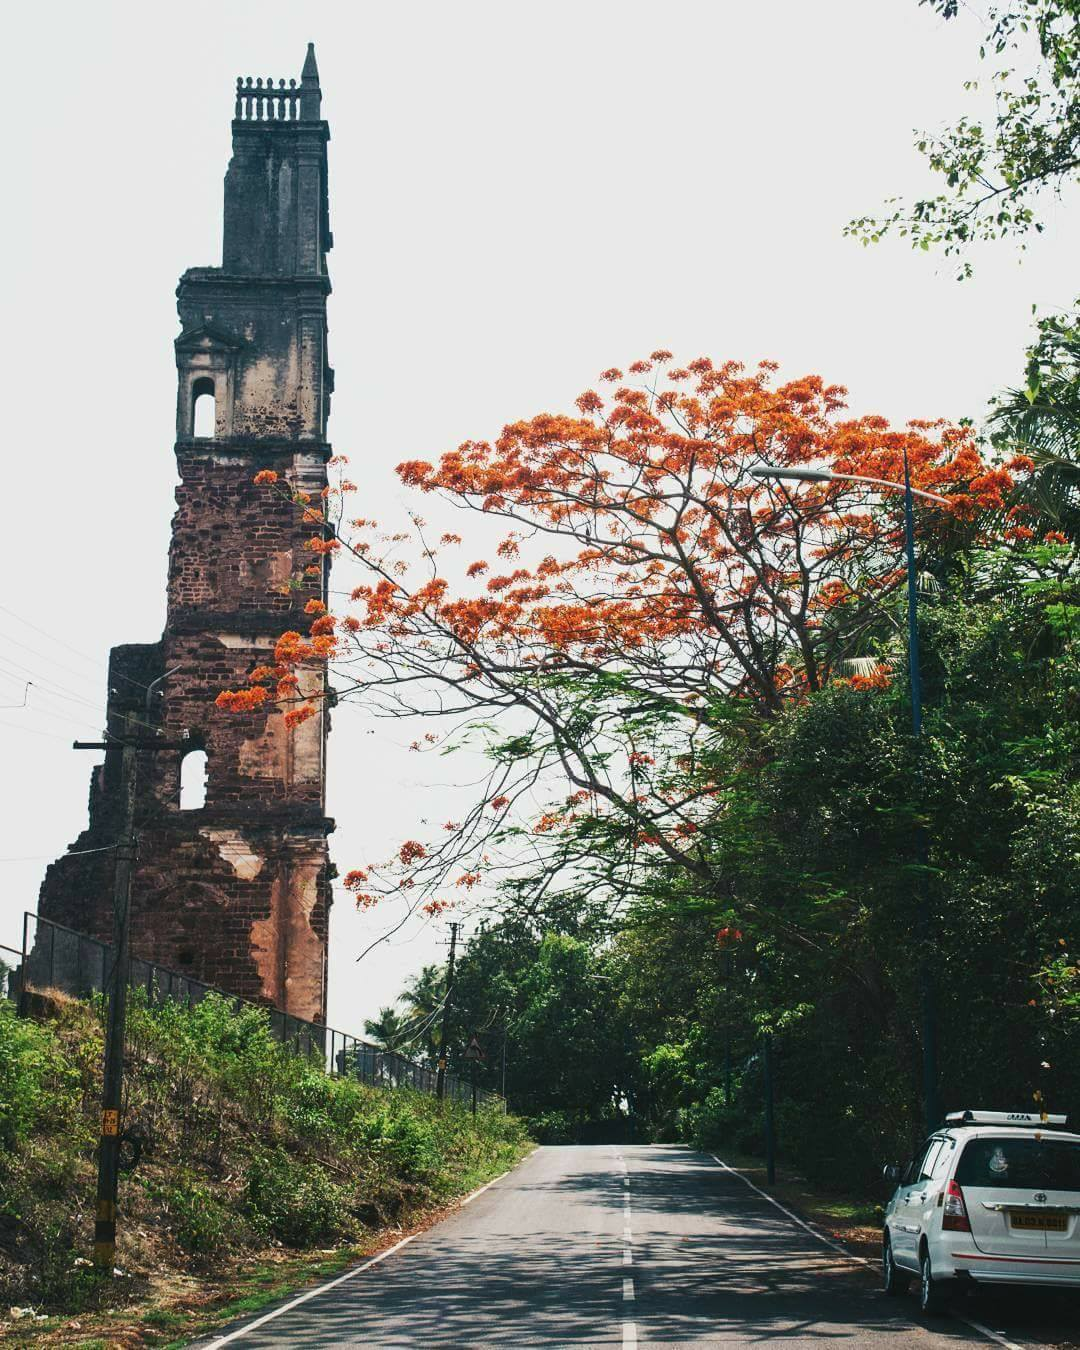 St. Augustine Tower, Old Goa.